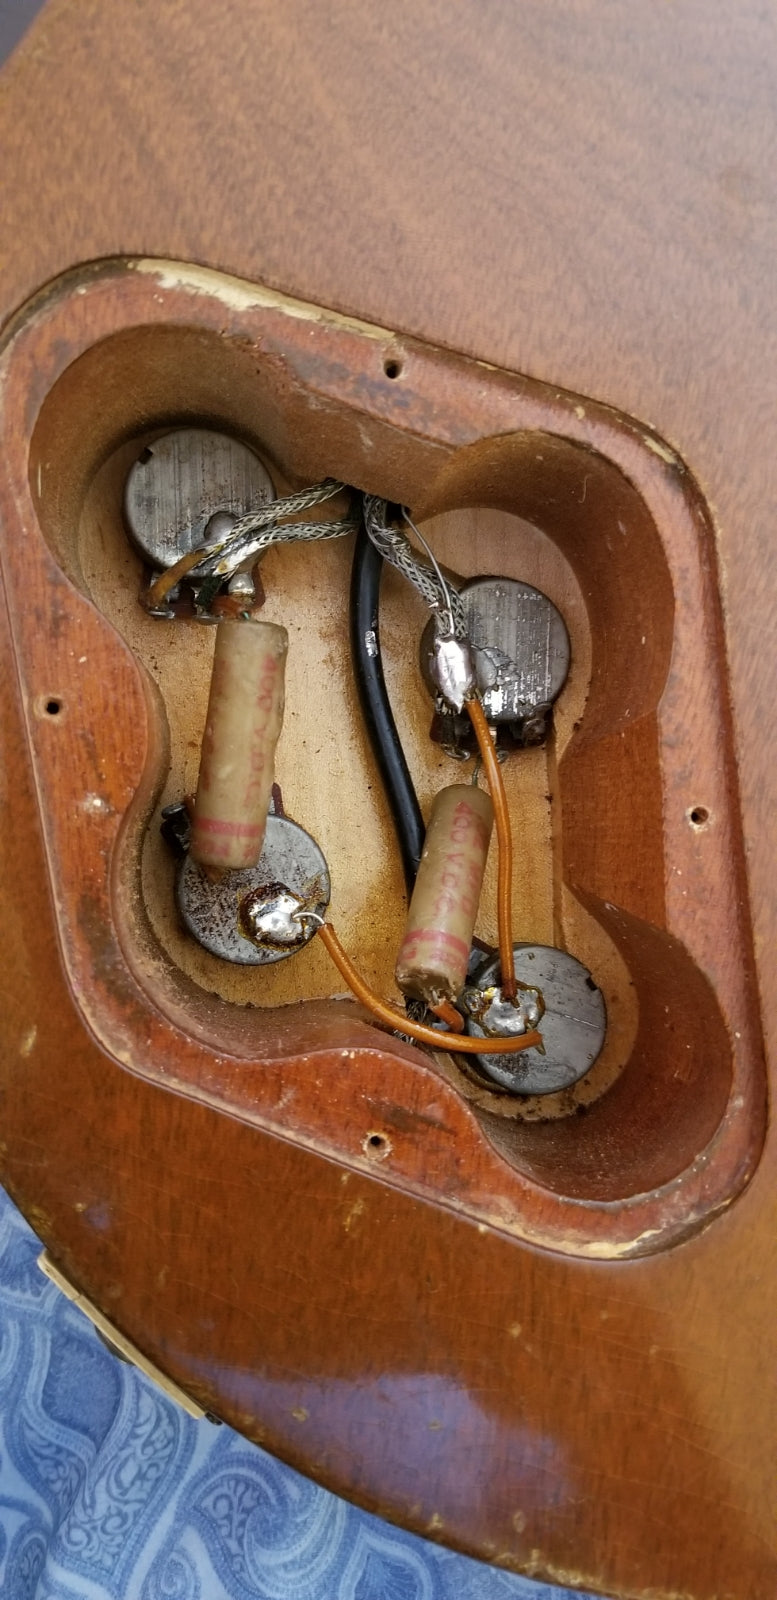 Control cavity, original potentiometers and electronics, 1954 Gibson Les Paul Model goldtop